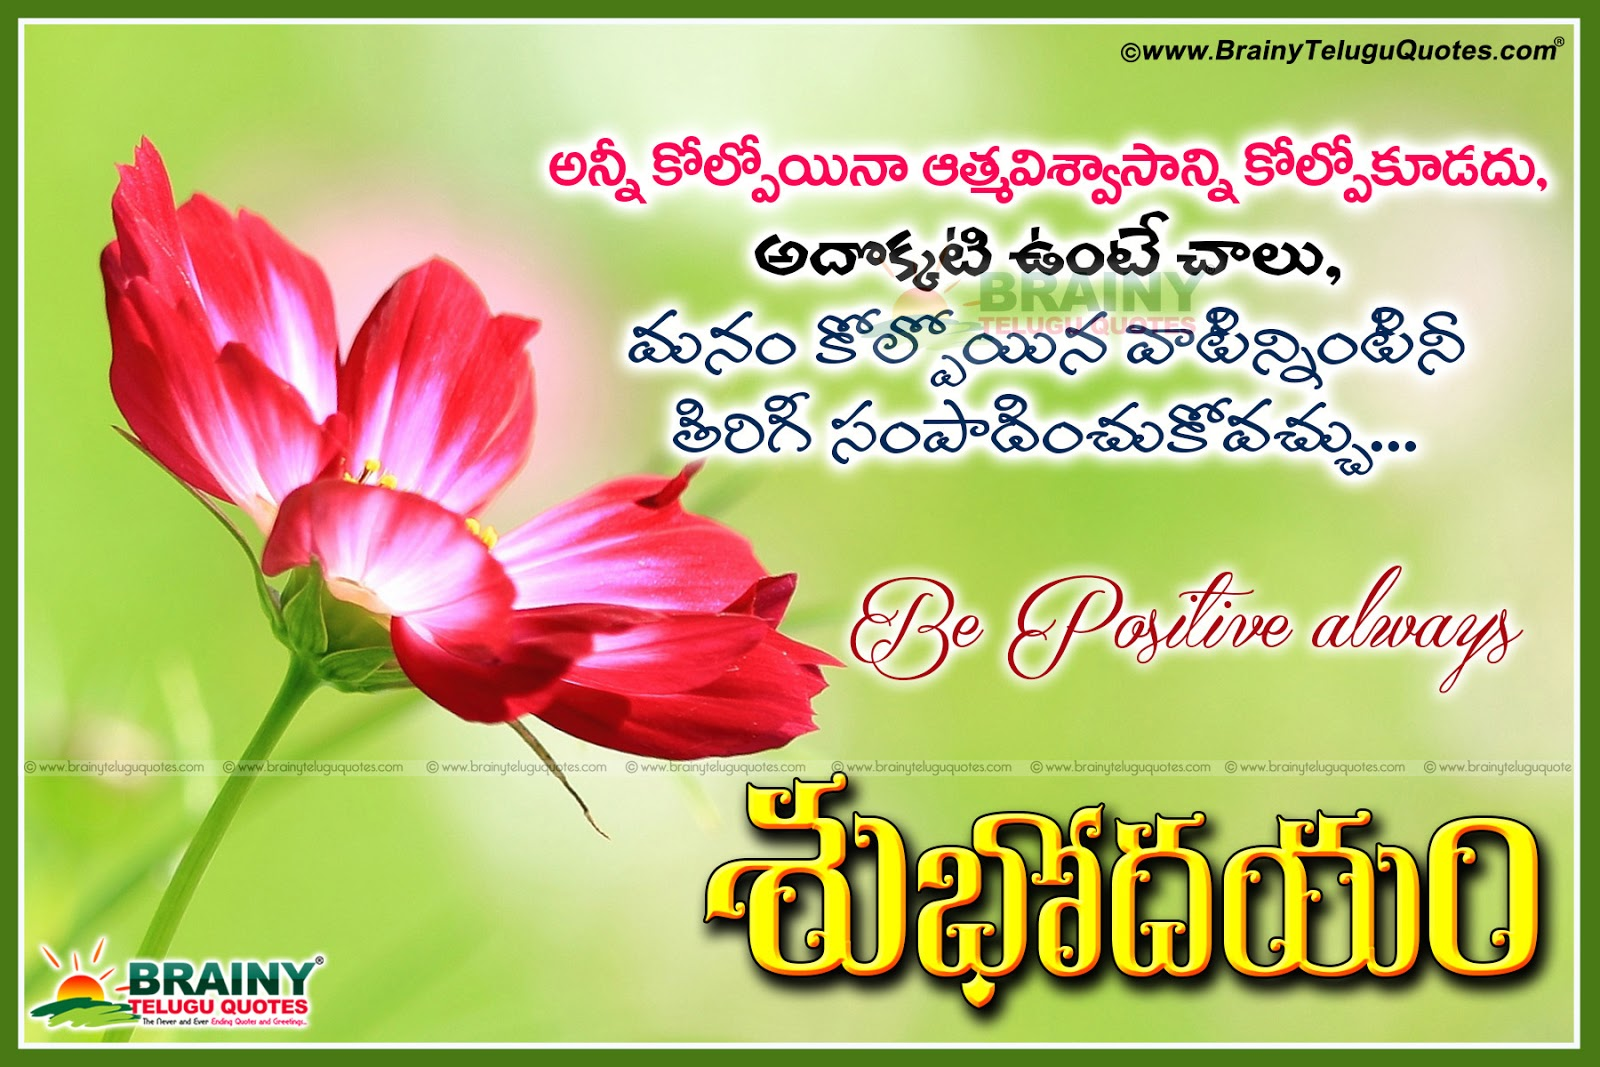 Good Morning Love Telugu : Best of telugu good morning greetings wishes messages